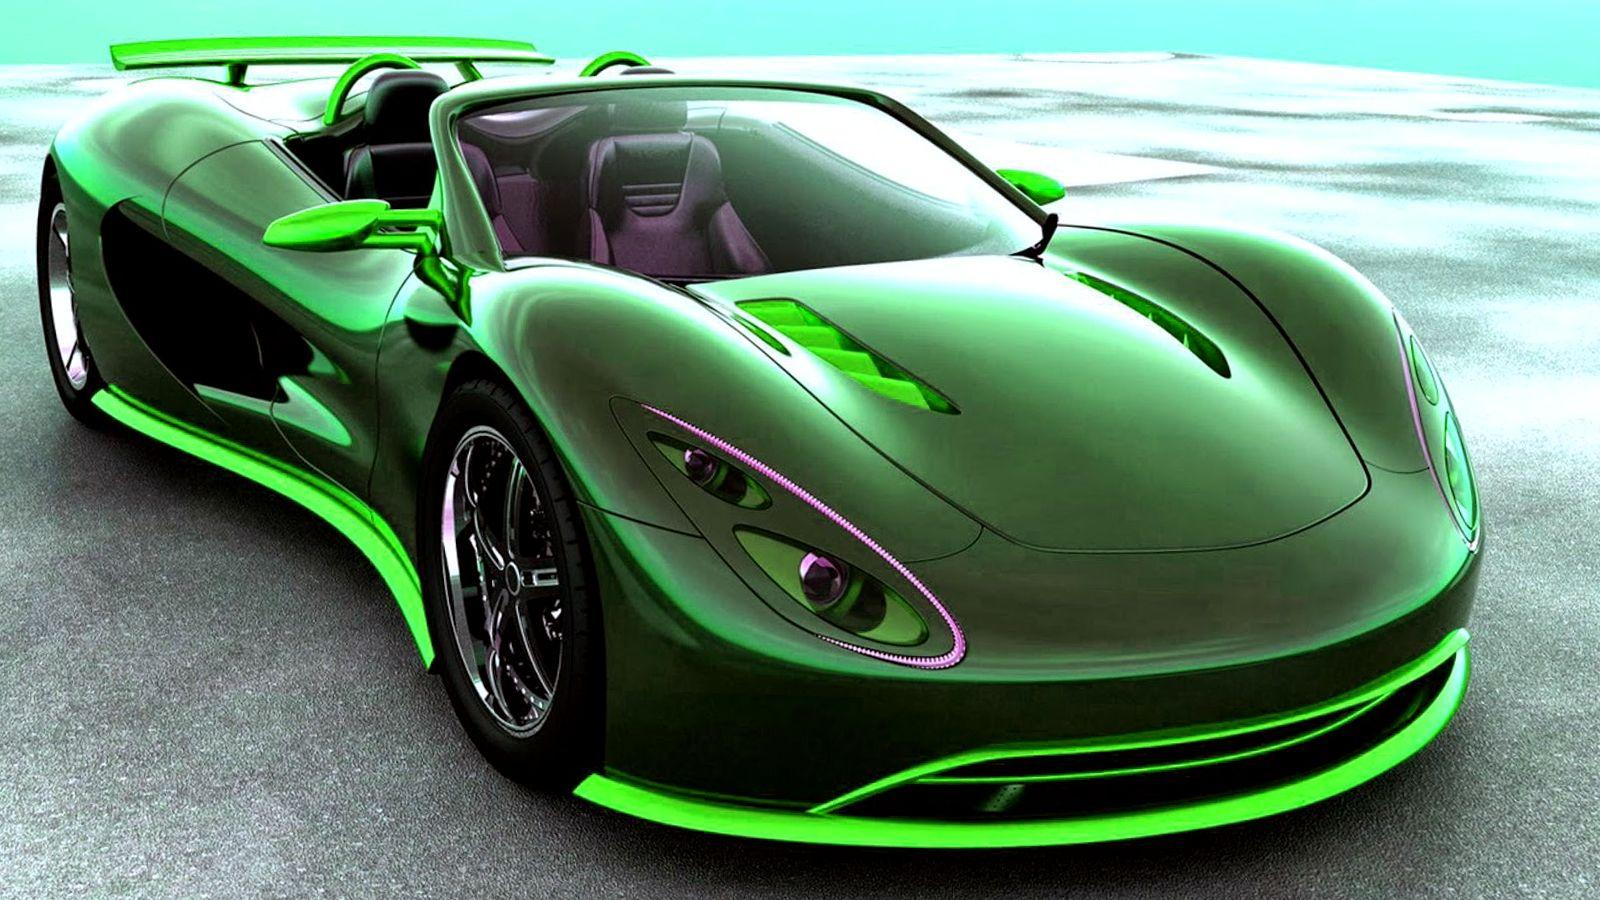 cars wallpapers background hd desktop backgrounds bot again amazing fastest screen mobile drift wallpapercave category